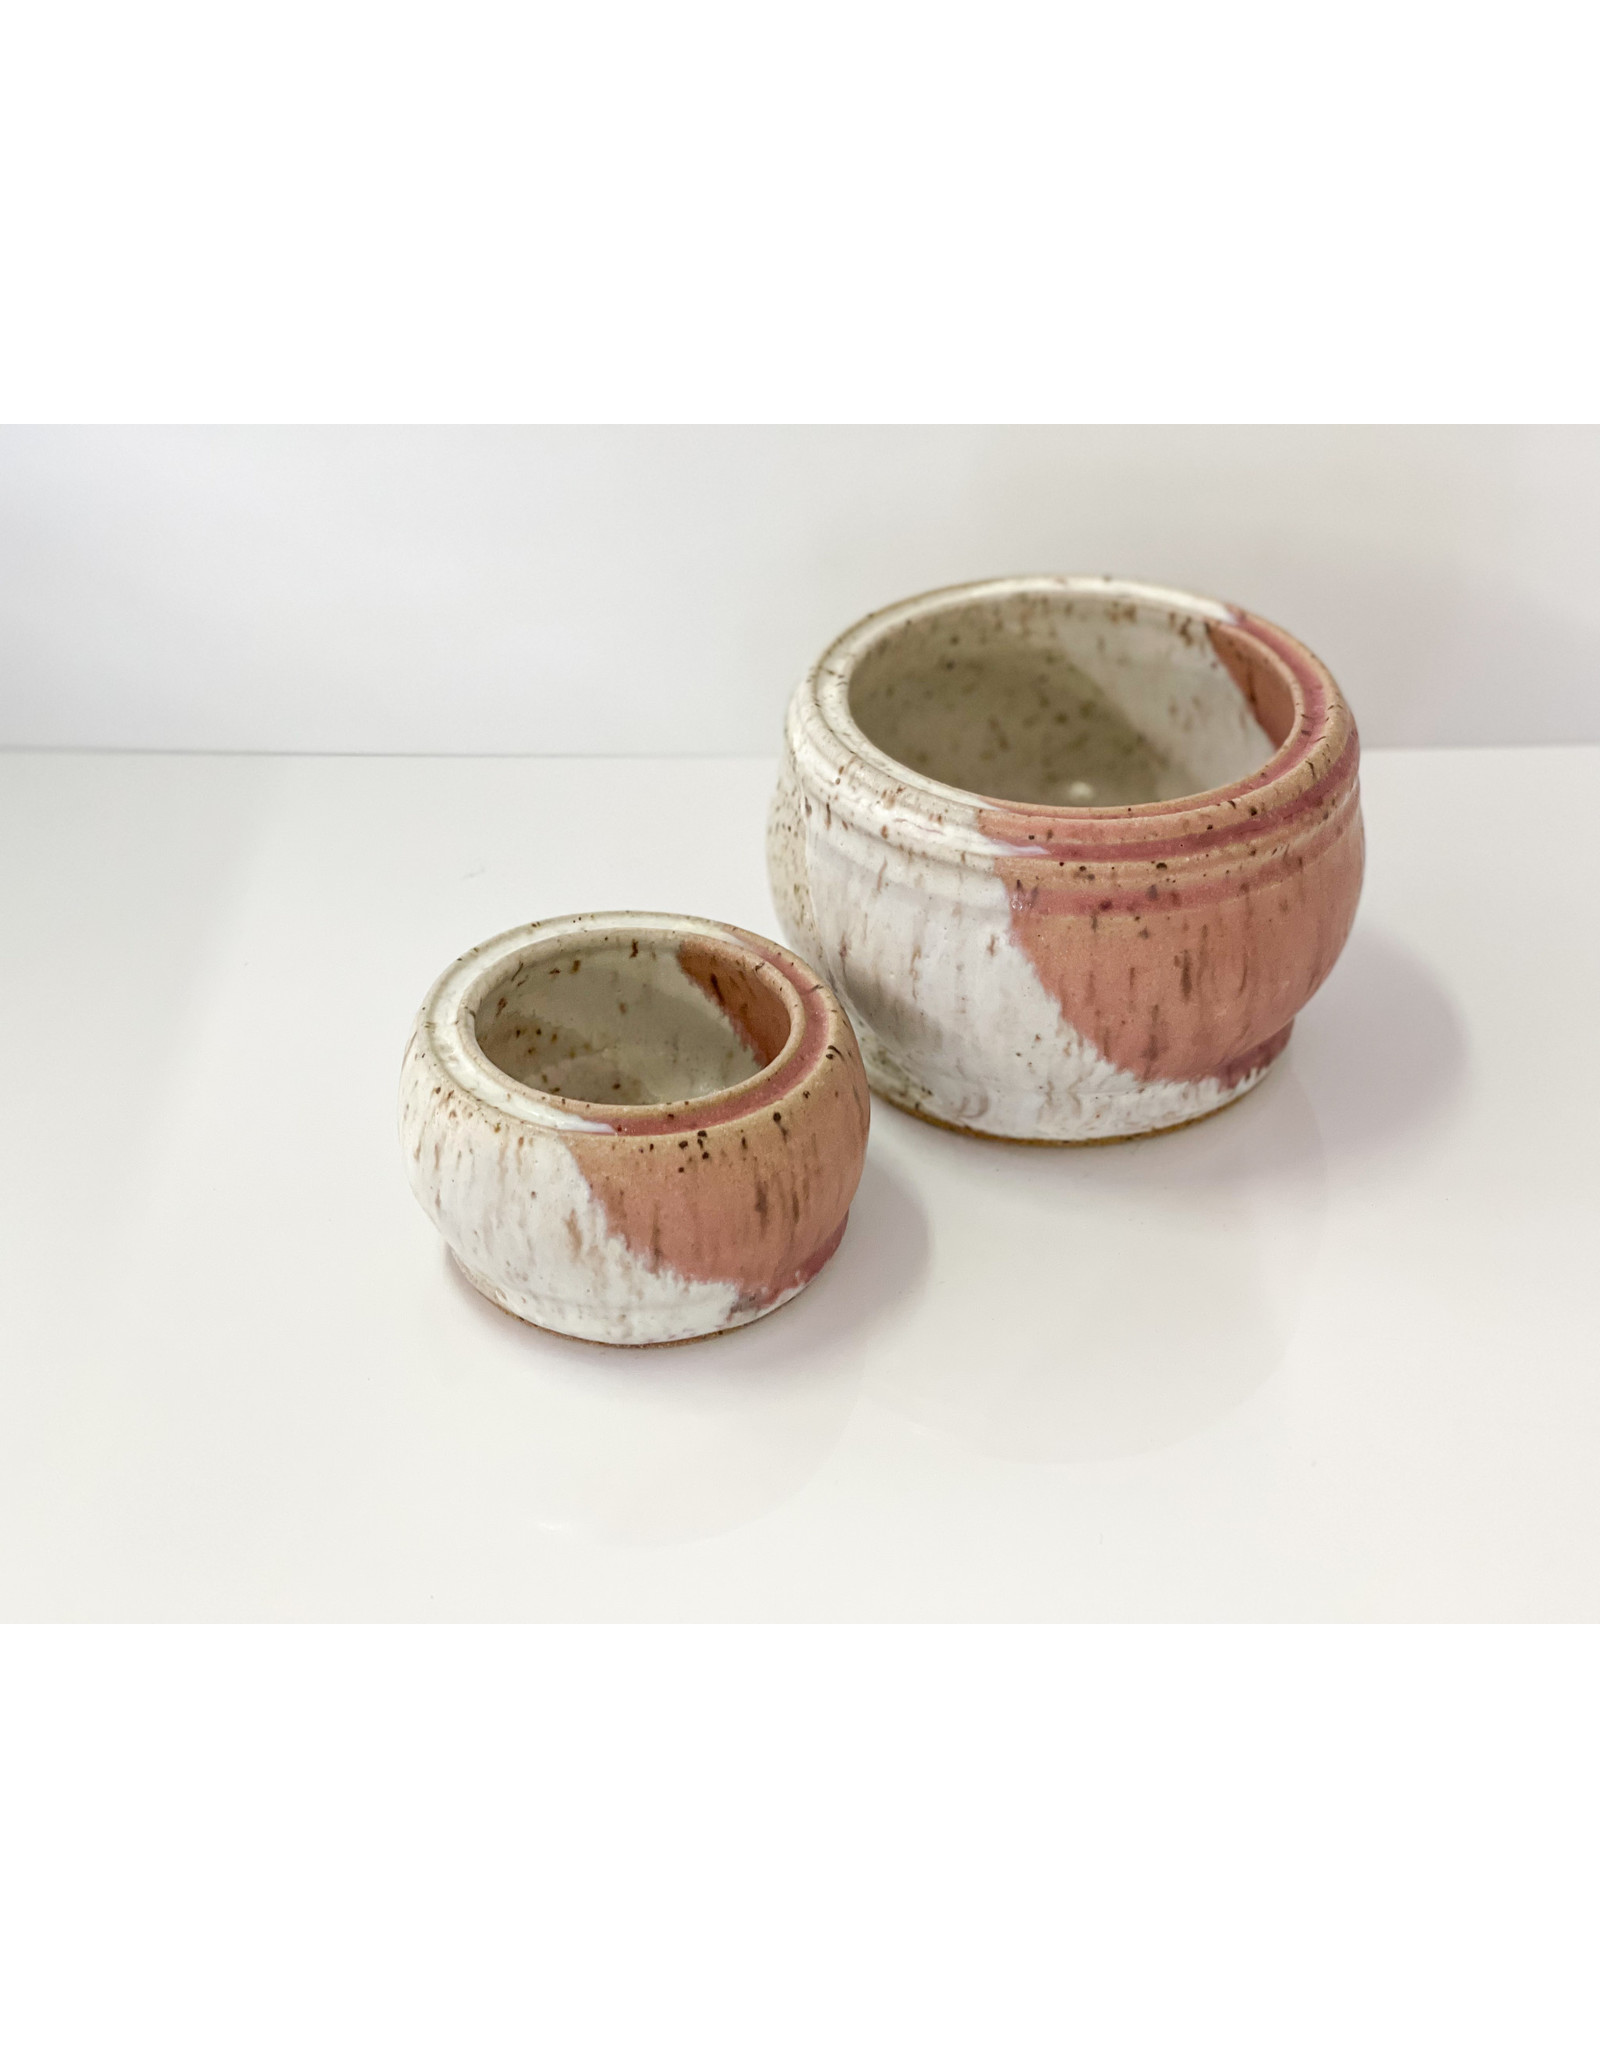 The Florist & The Merchant Hand Thrown Speckled Clay Planter